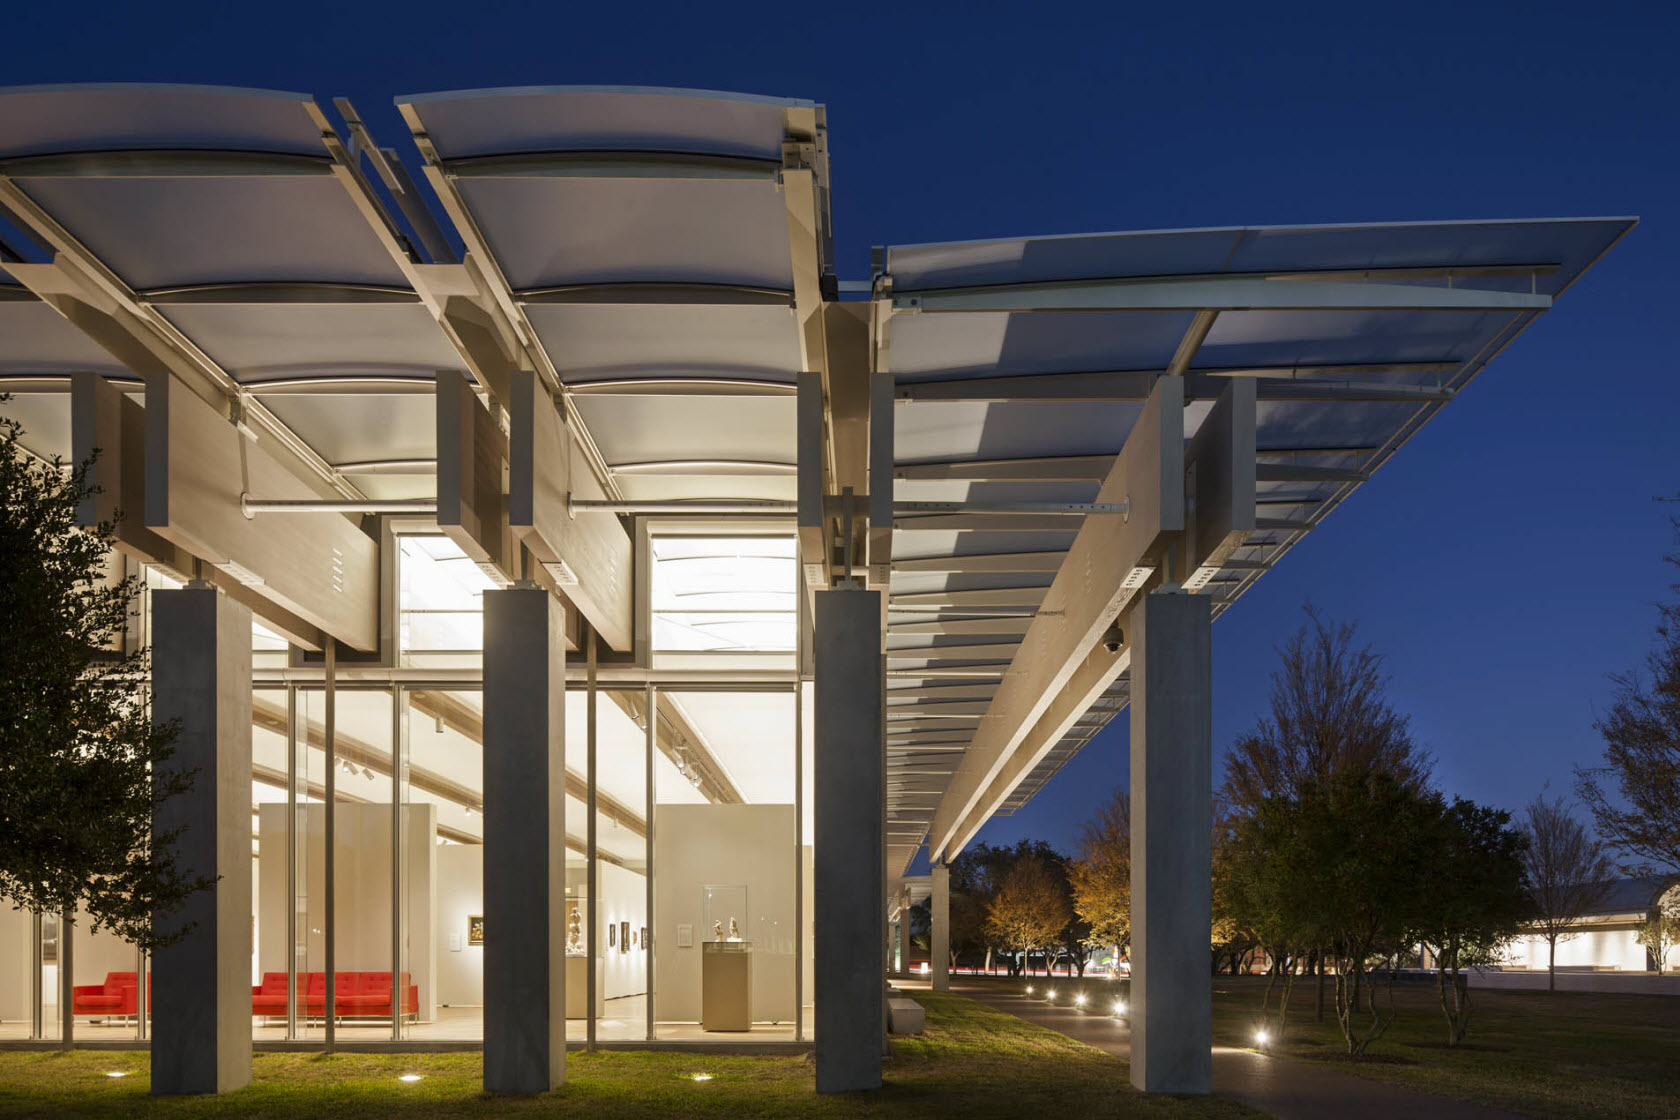 The Piano Pavilion at the Kimbell Art Museum, Texas